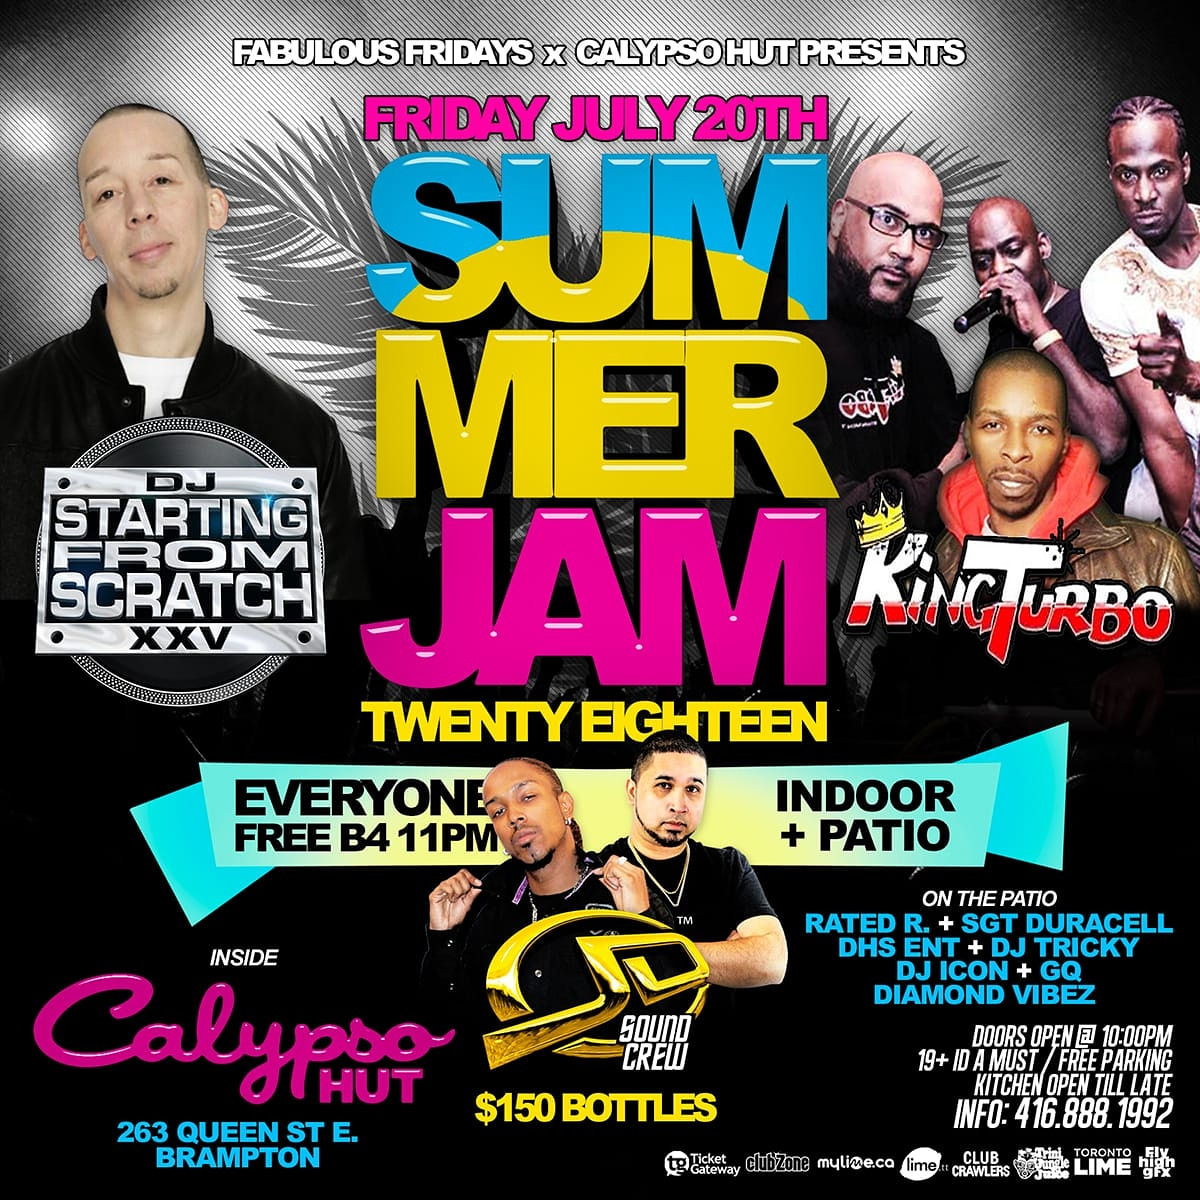 FRI. JULY 20TH 2018 SUMMER JAM FEAT: STARTING FROM SCRATCH AND KINGTURBO